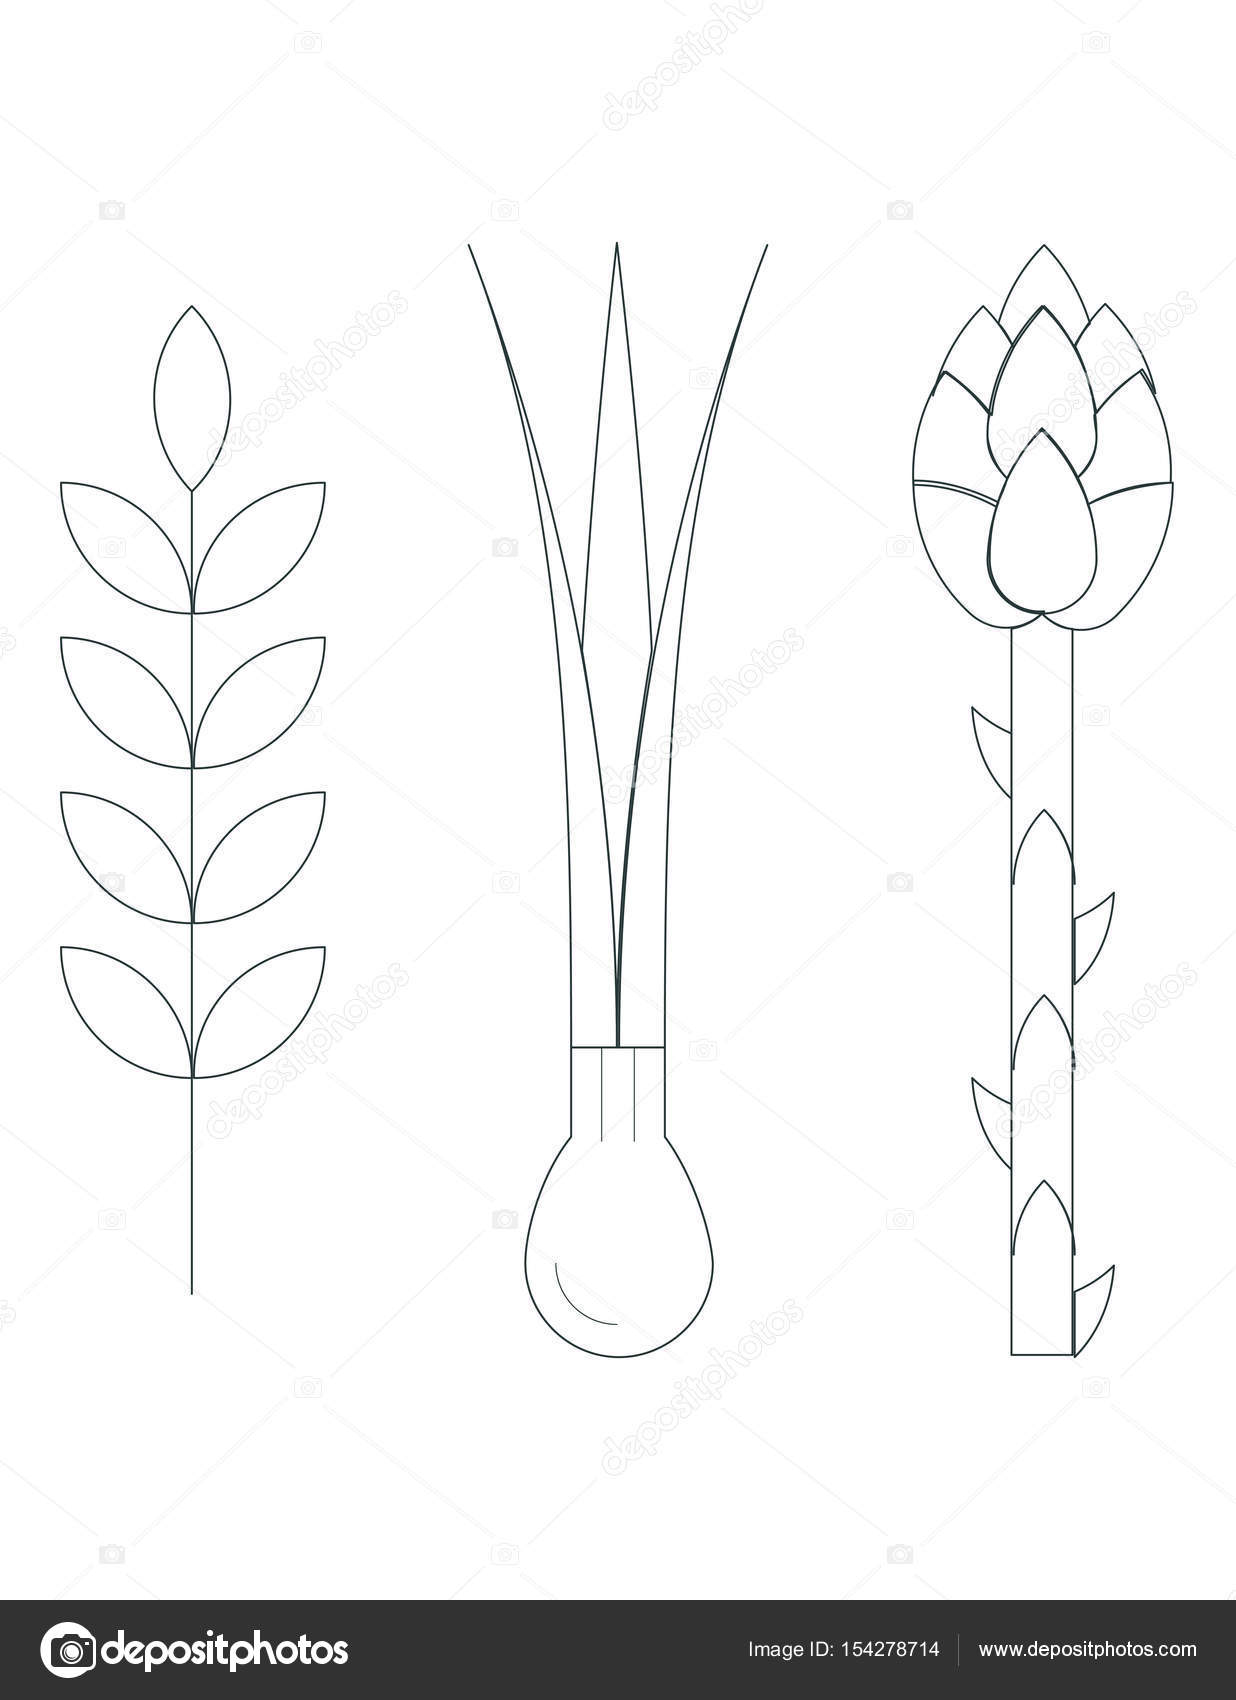 Greens asparagus onion plants stock vector everydaytemplate greens asparagus onion plants vector illustration vector by everydaytemplate ccuart Image collections